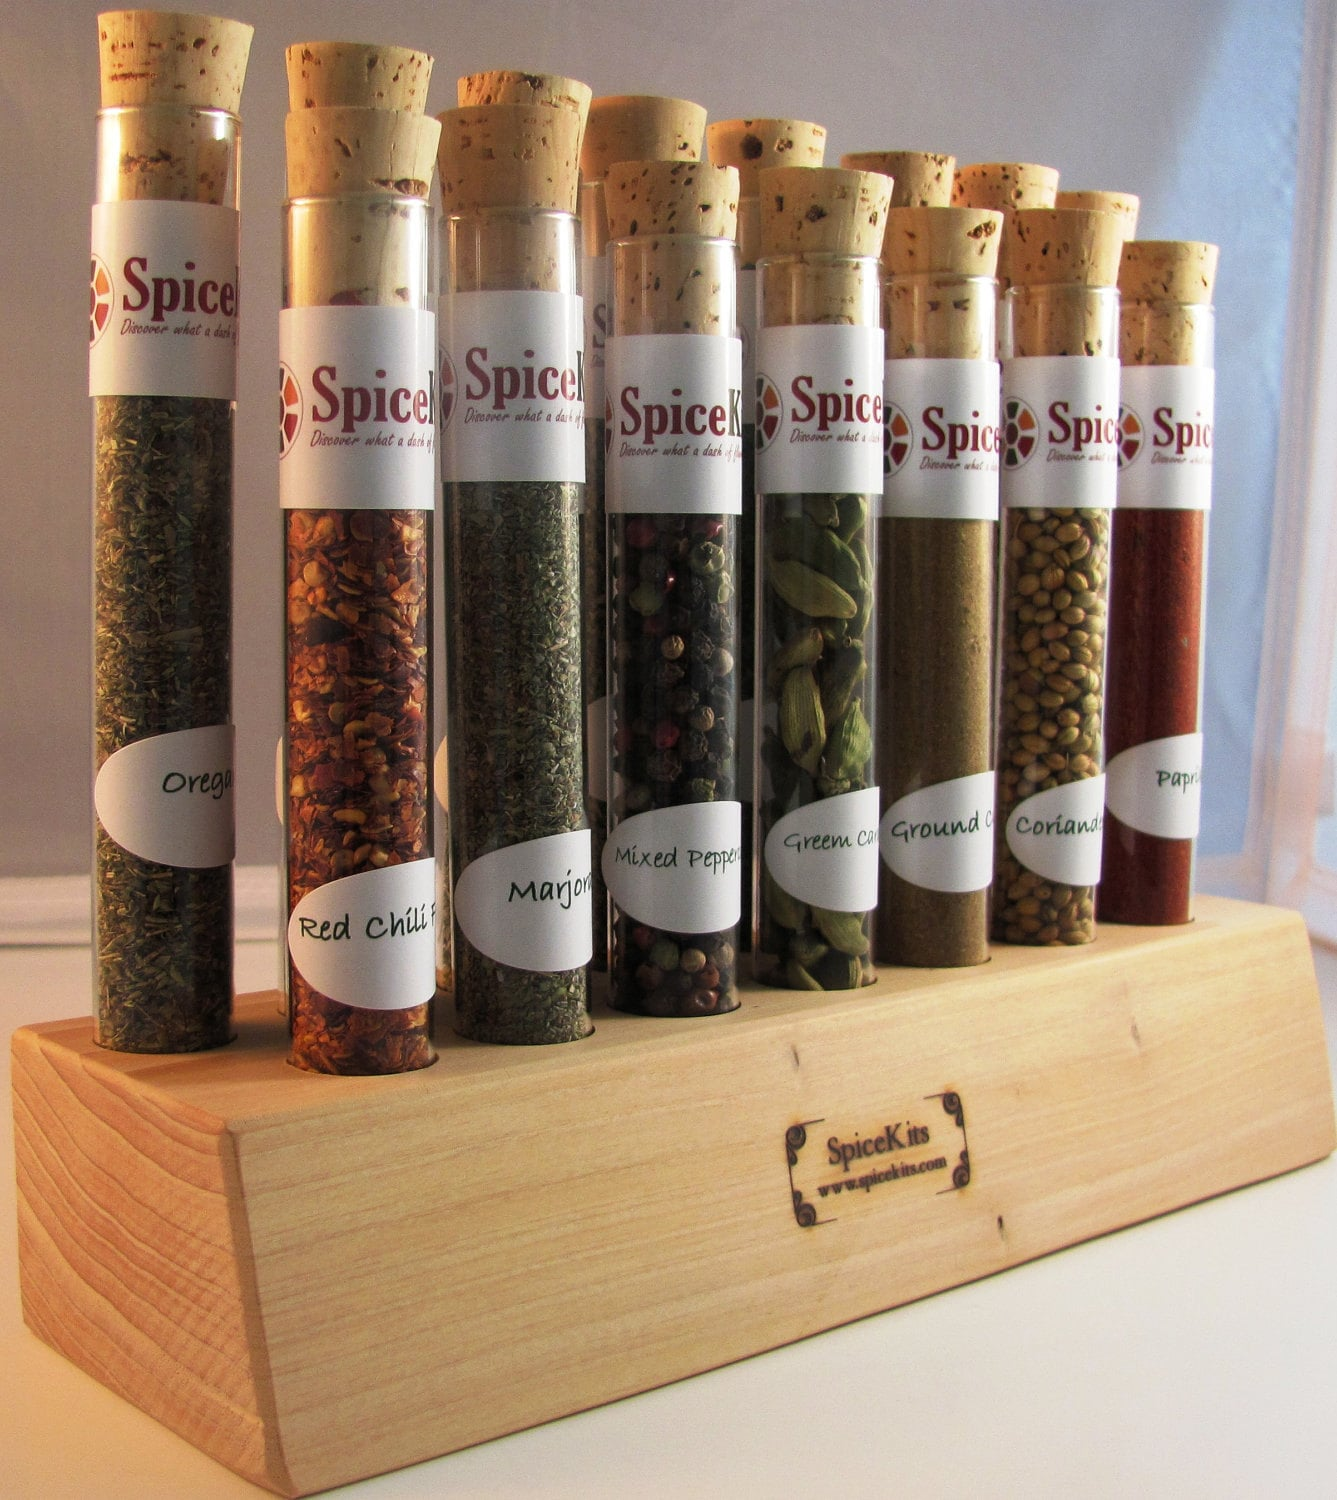 Test Tube Spice Rack By Spicespicebaby On Etsy